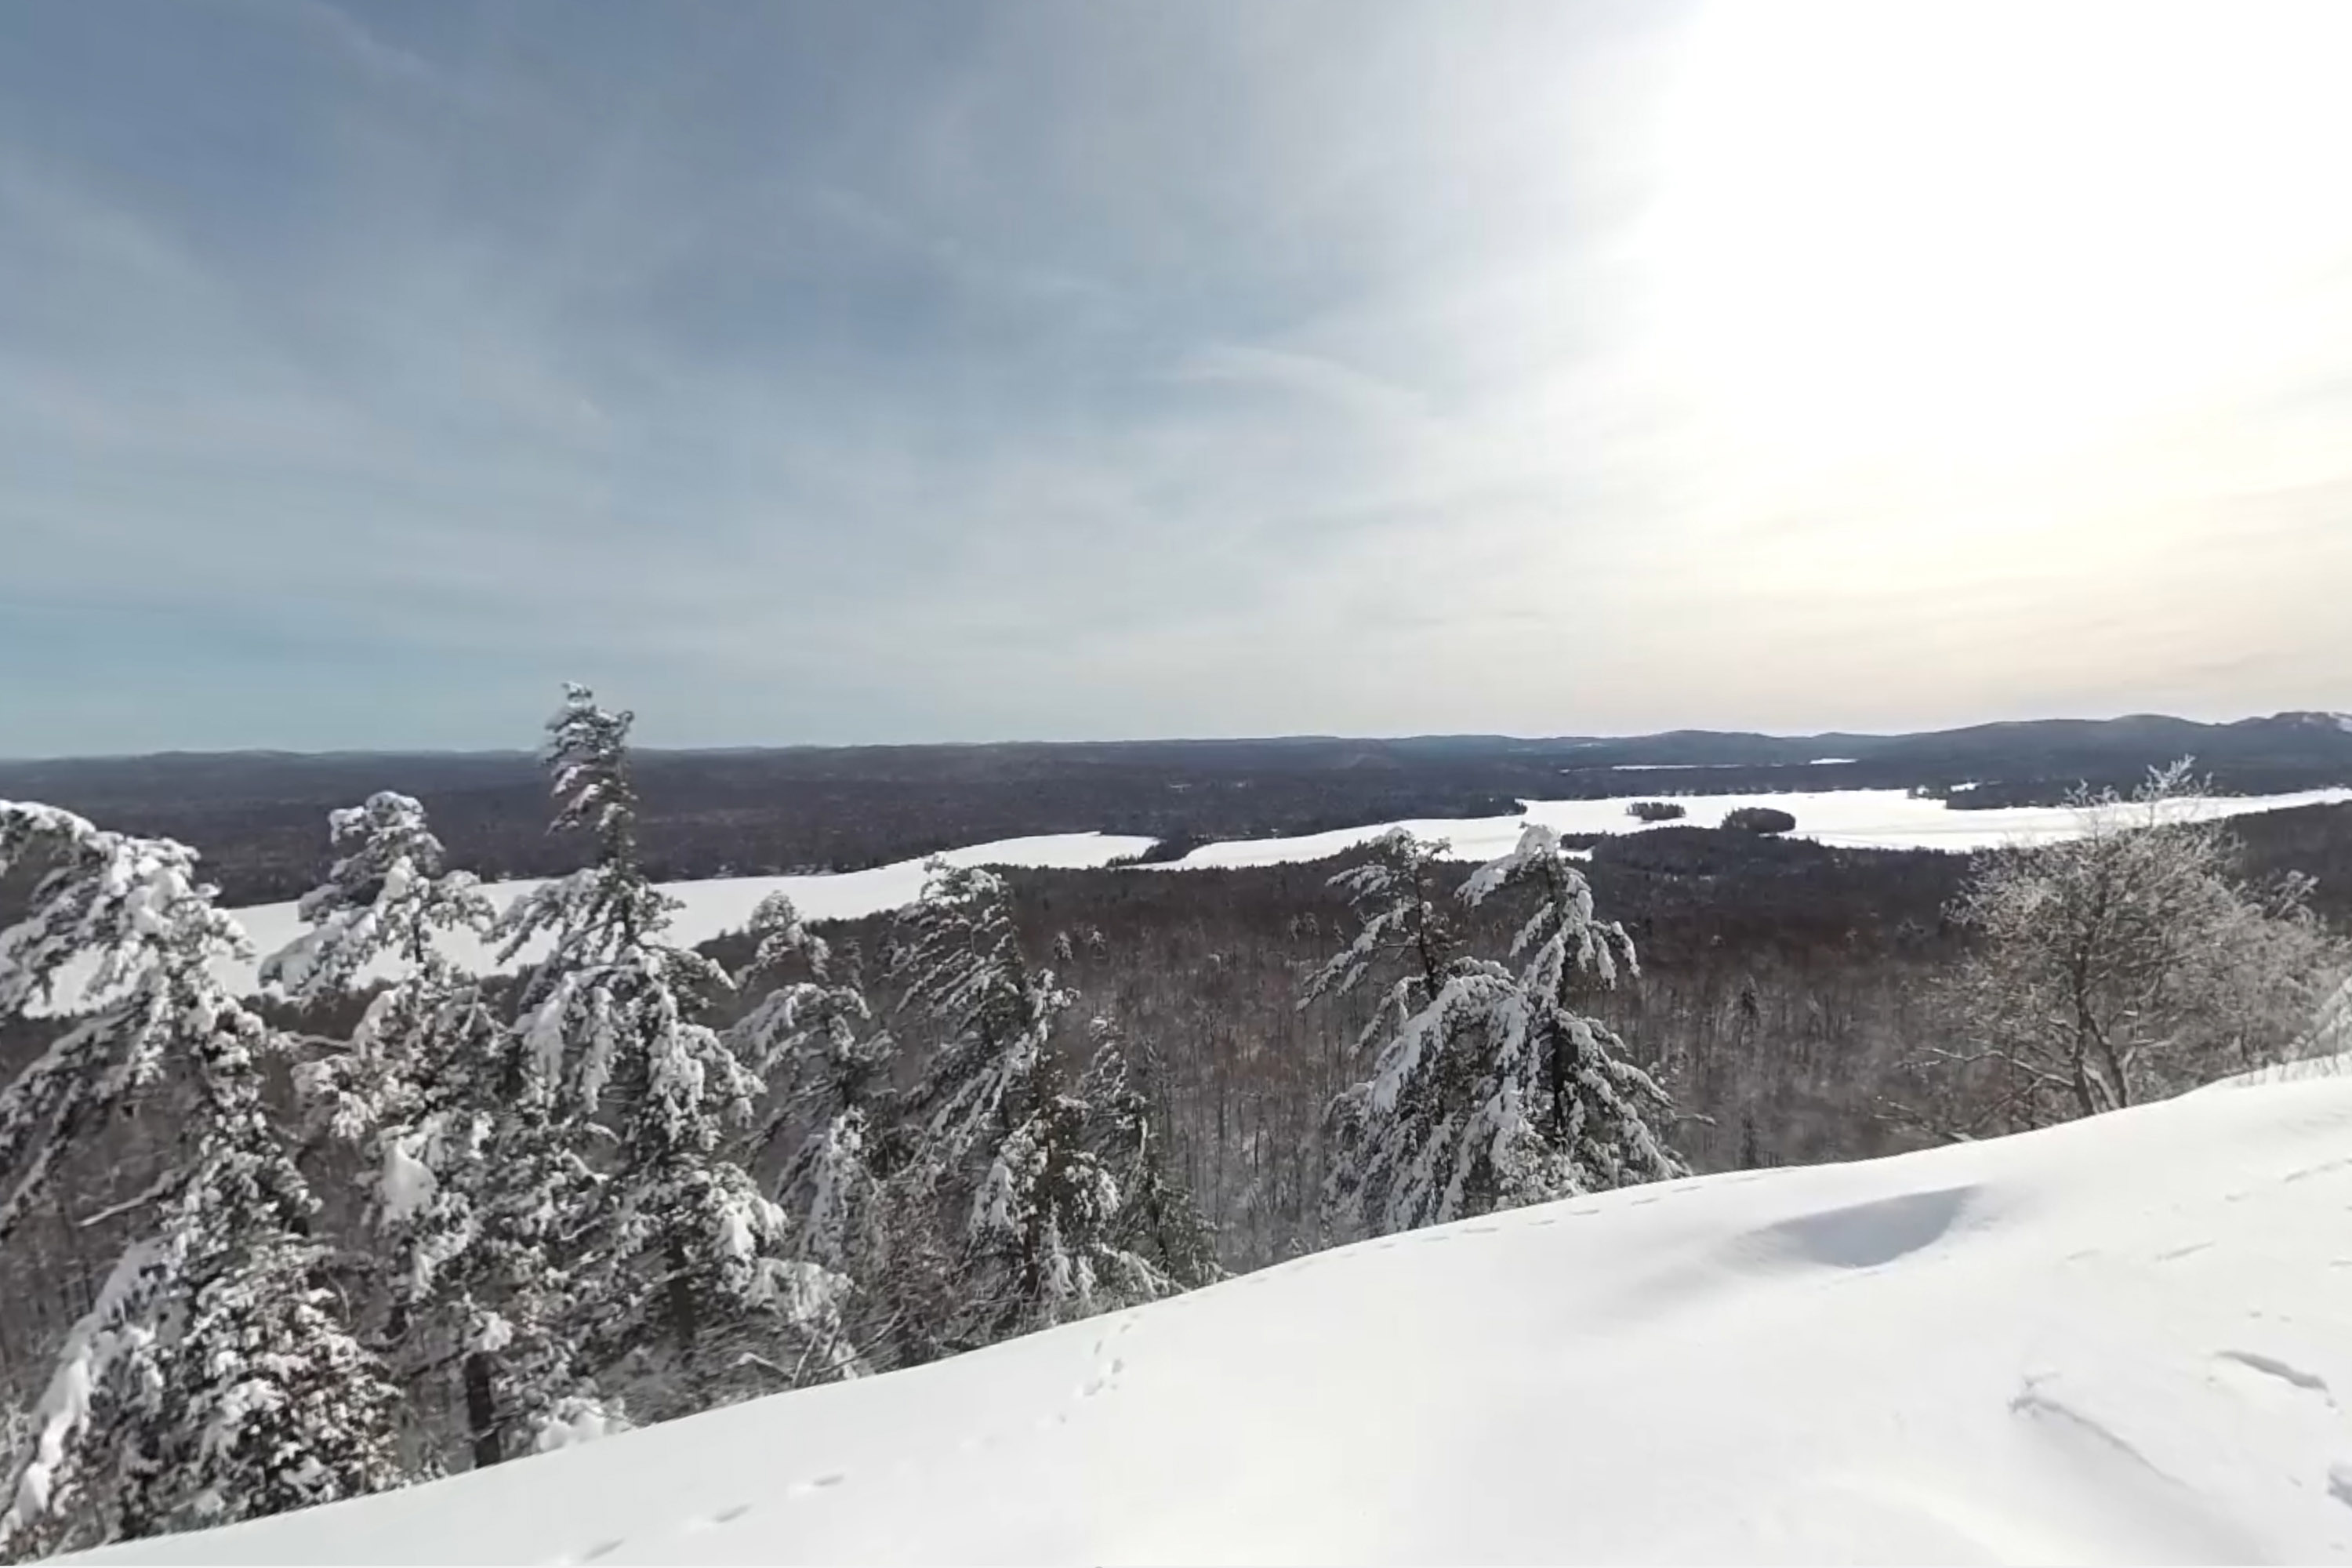 View of Fulton Chain Lakes from atop Bald Mountain near Old Forge in the Adirondacks.